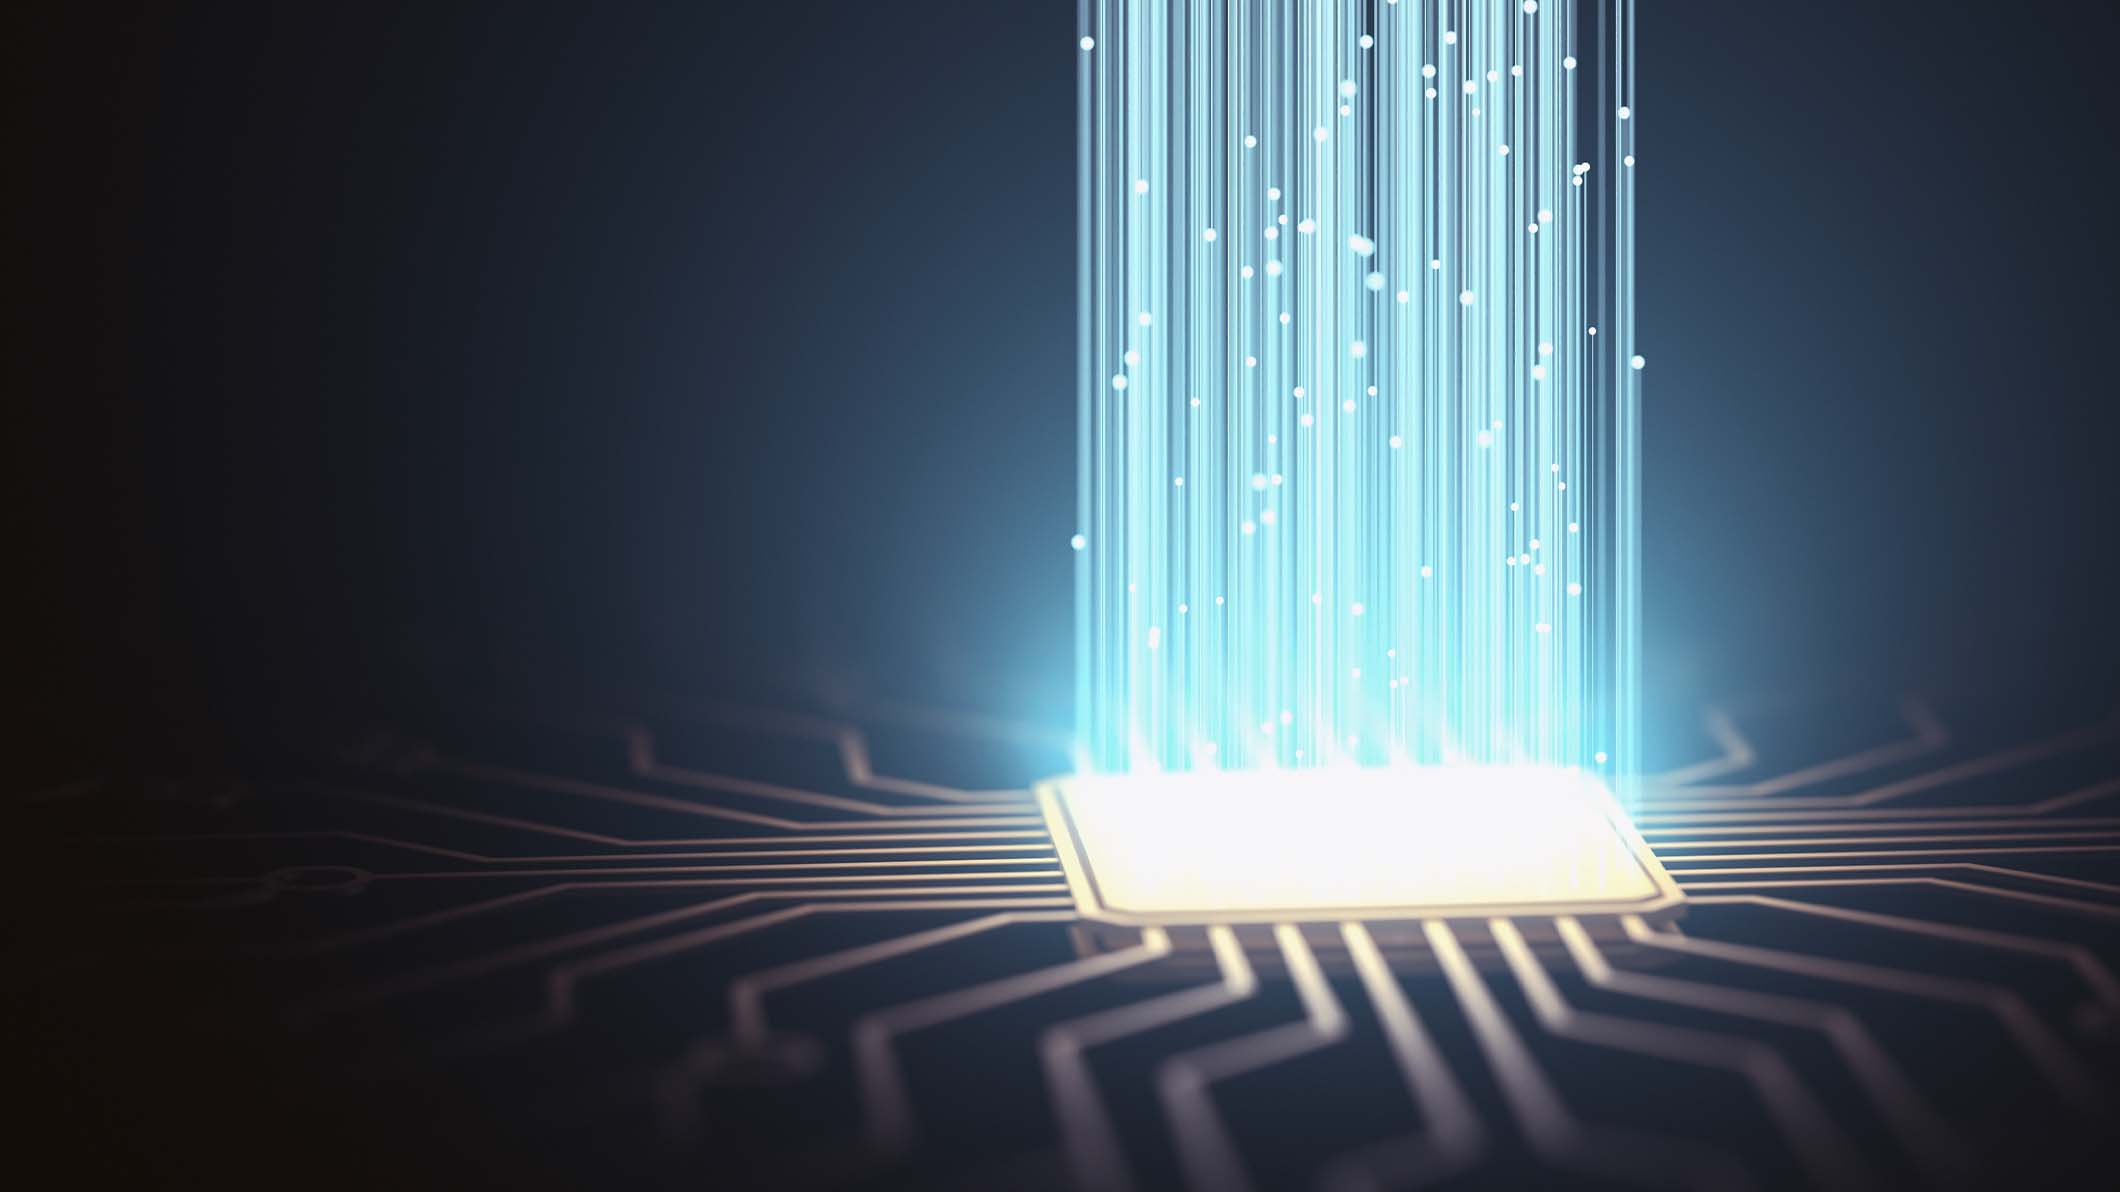 An illustration depicting a computer chip projecting beams of light upward